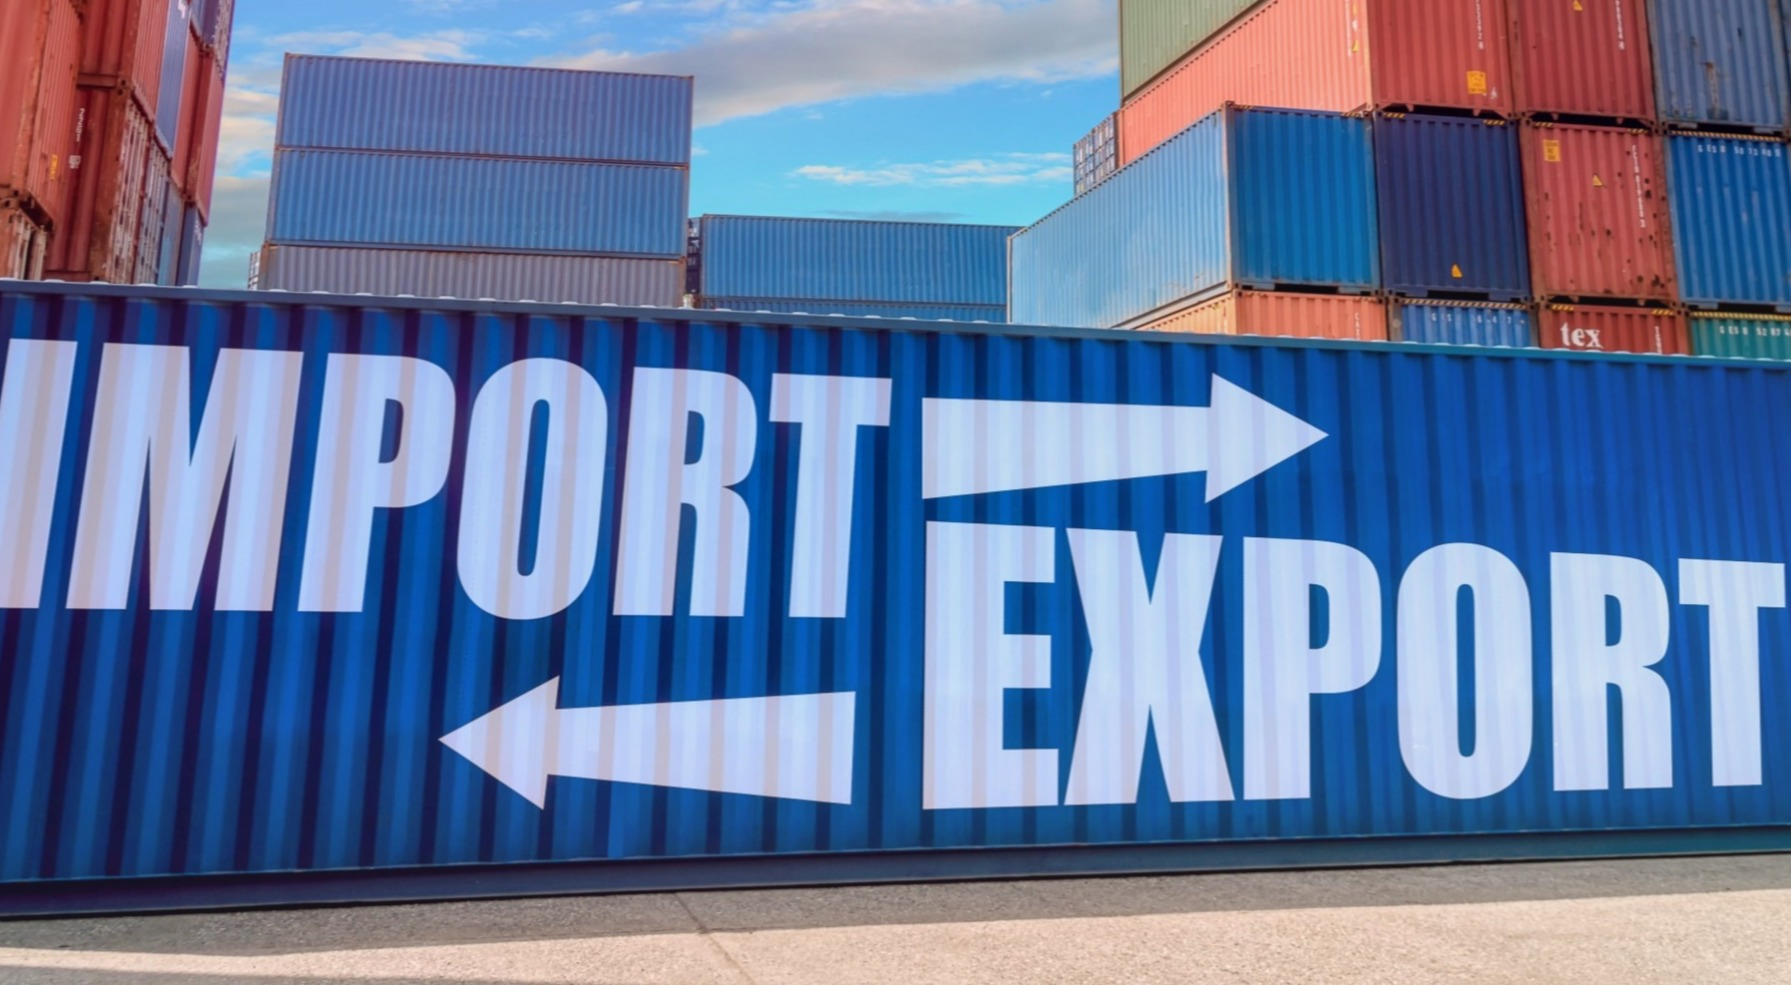 Containers%252520shipping%25252C%252520container%252520box%252520loading%252520for%252520logistic%25